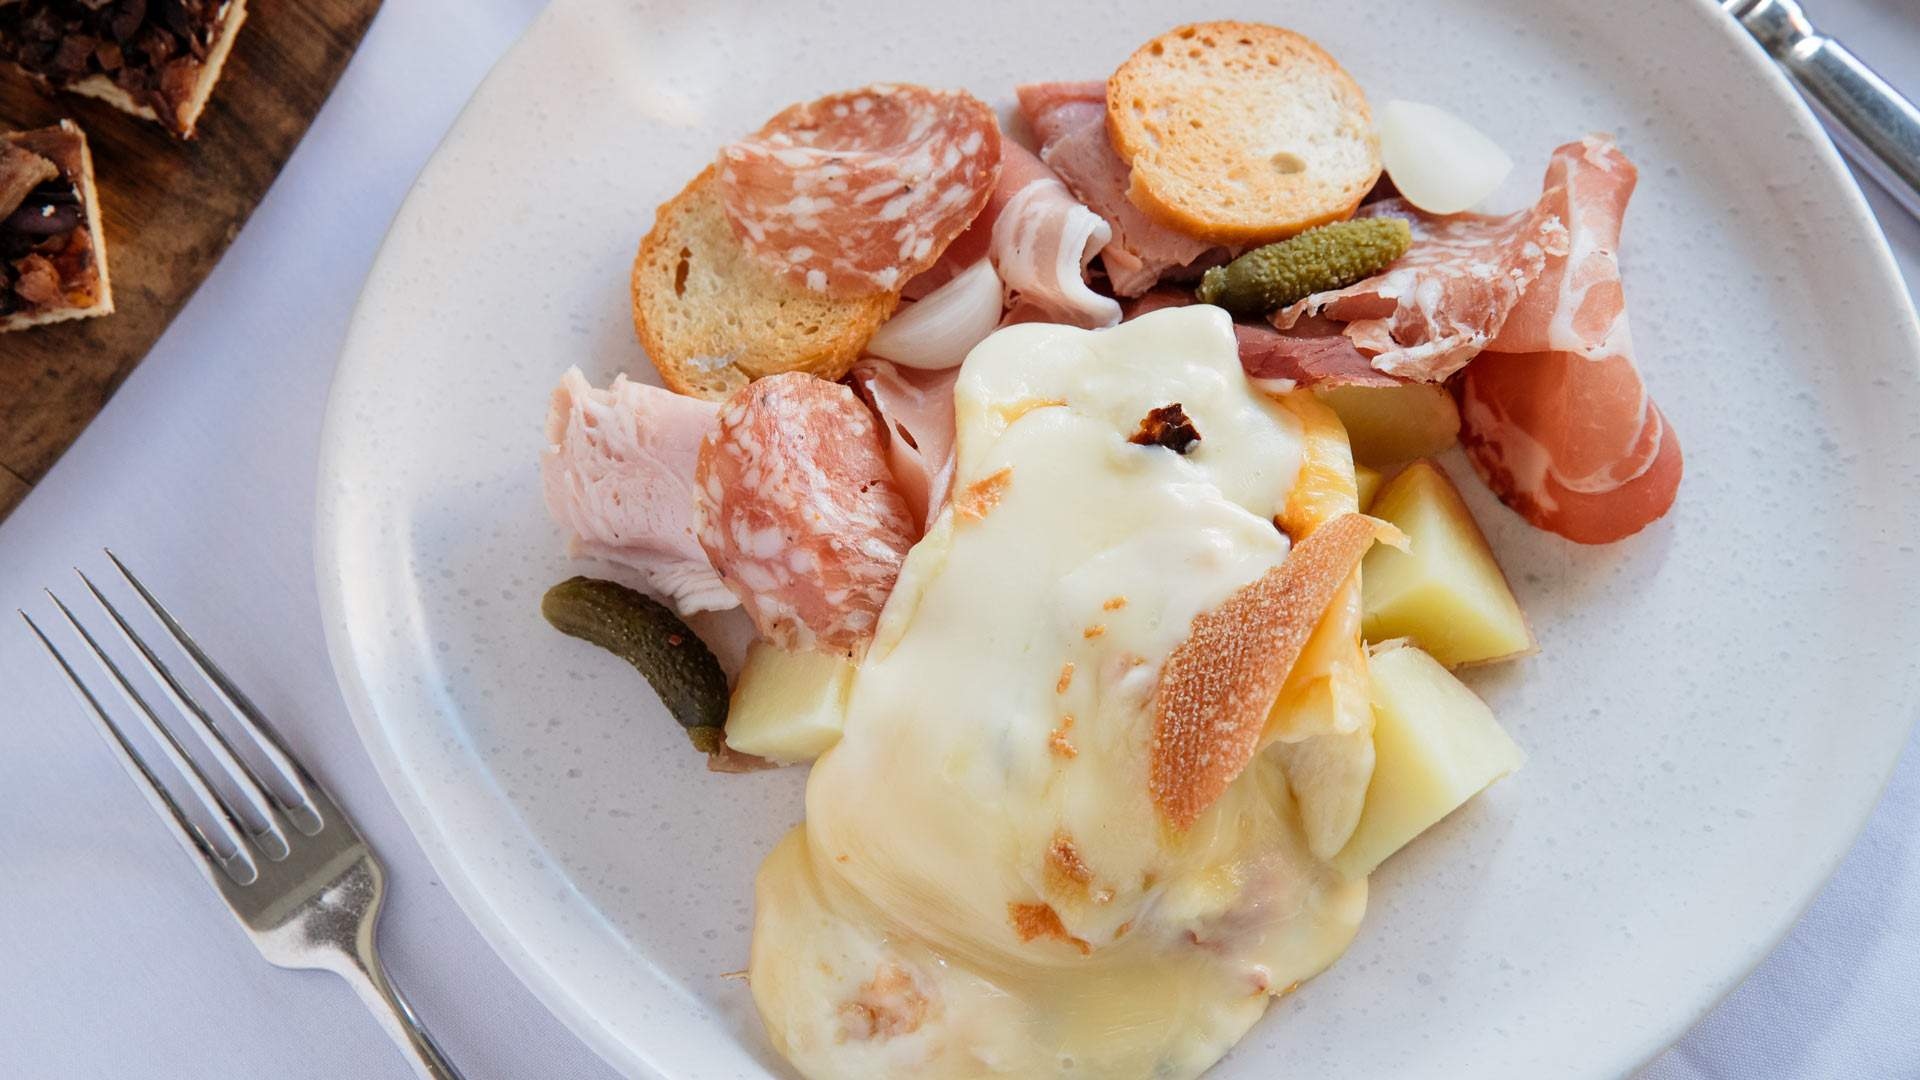 All-You-Can-Eat Raclette